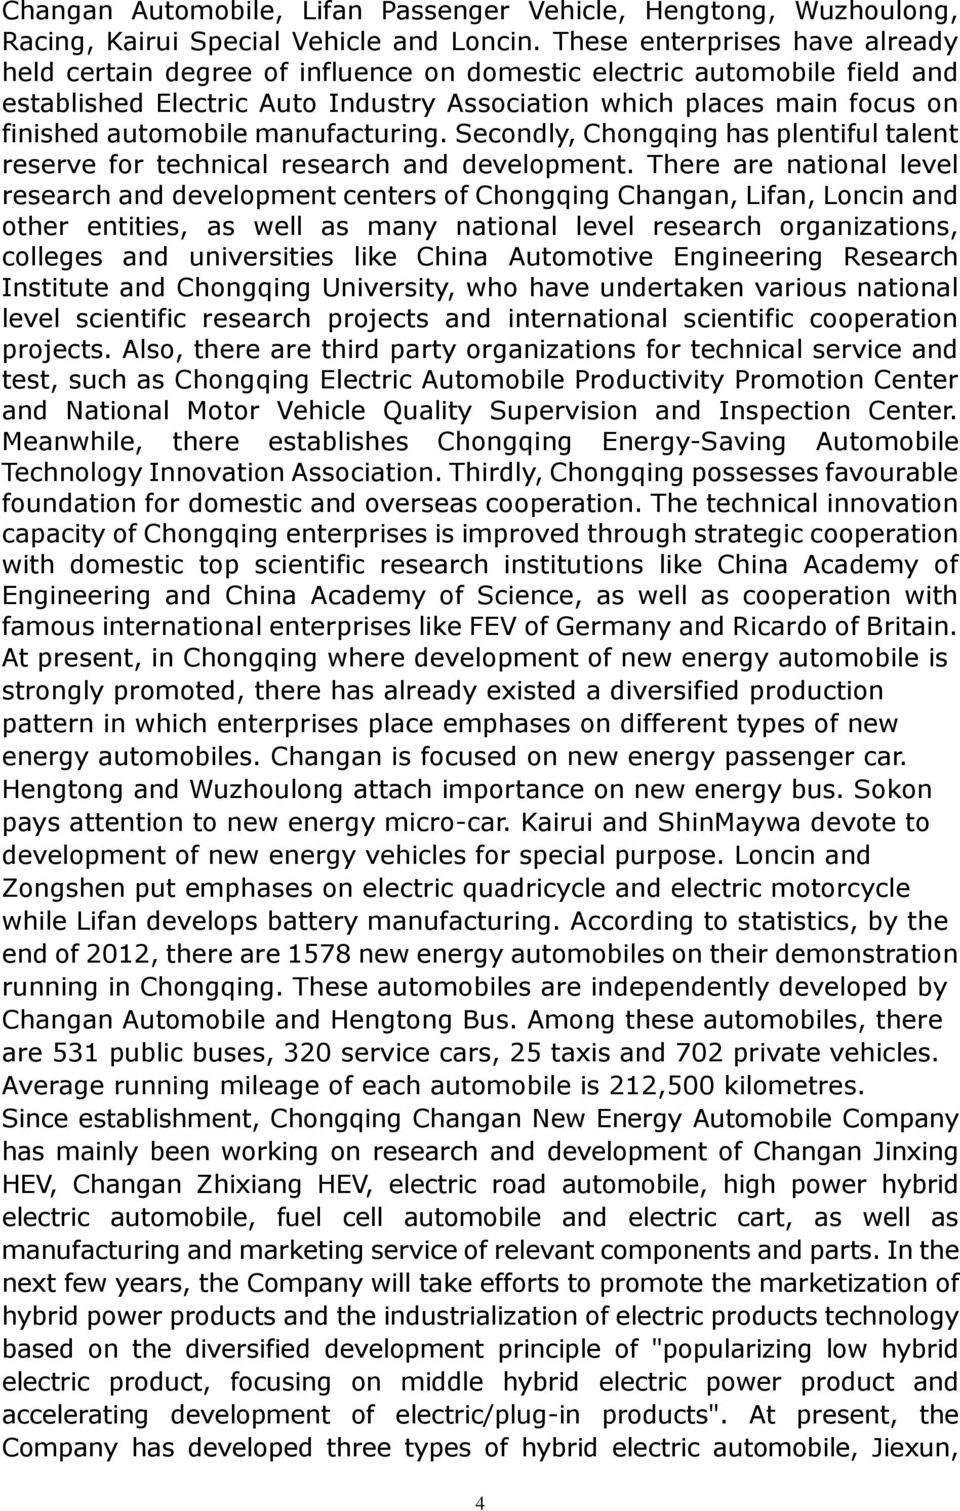 Secondly, Chongqing has plentiful talent reserve for technical research and development.